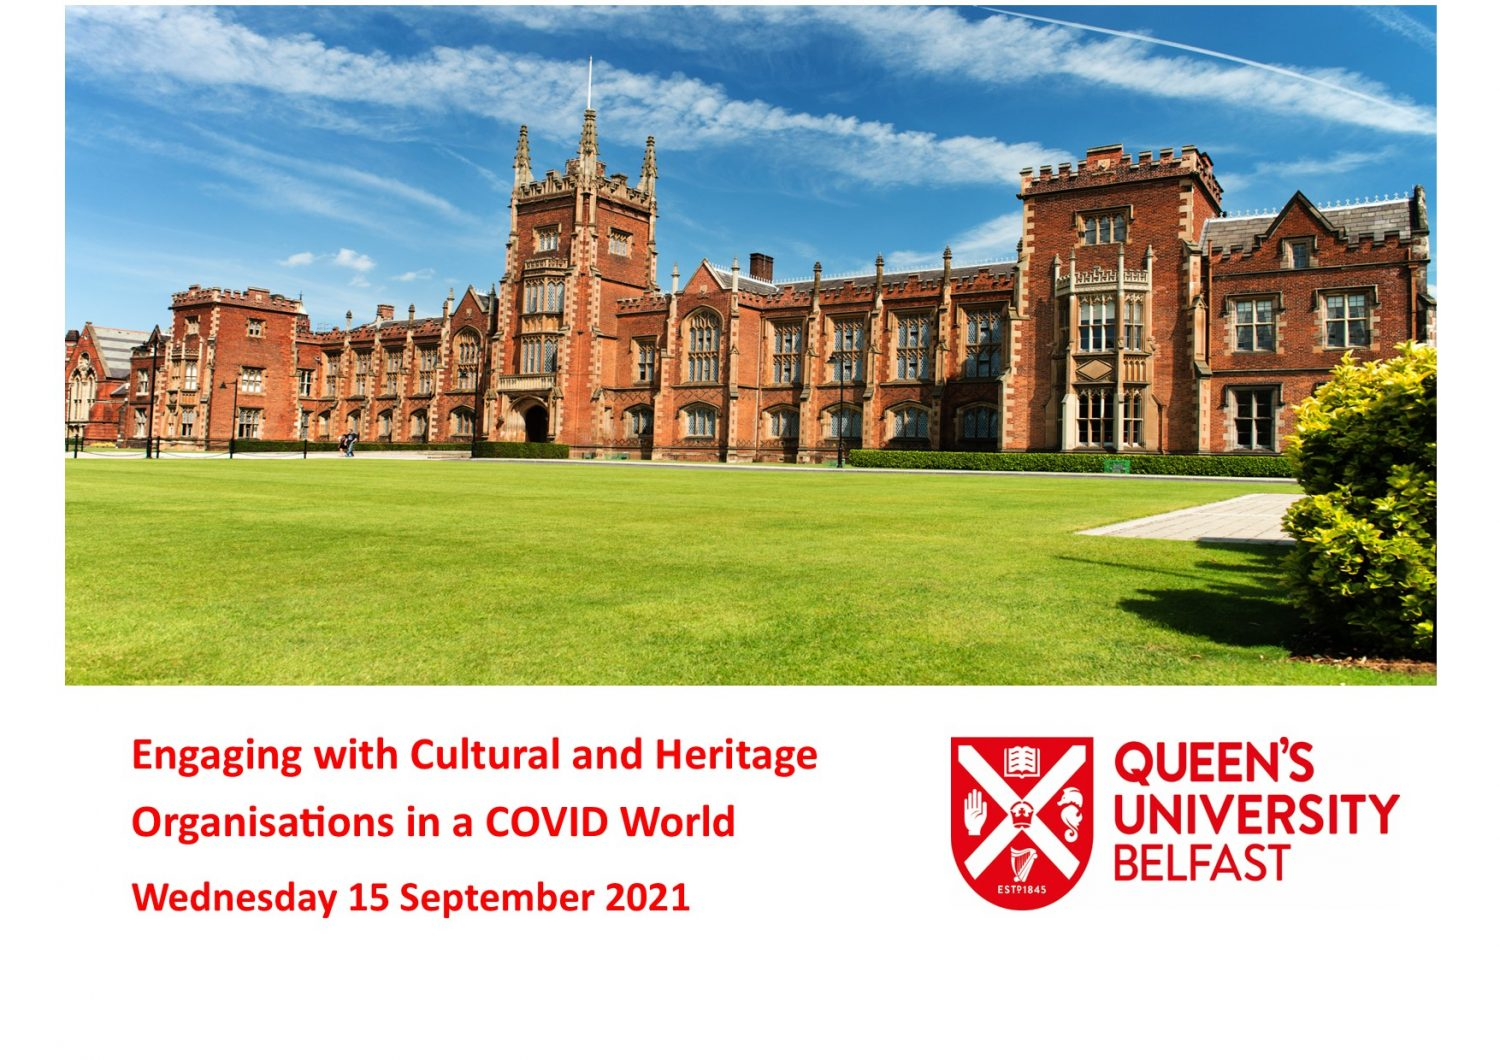 Engaging with Cultural and Heritage Organisations in a Covid World